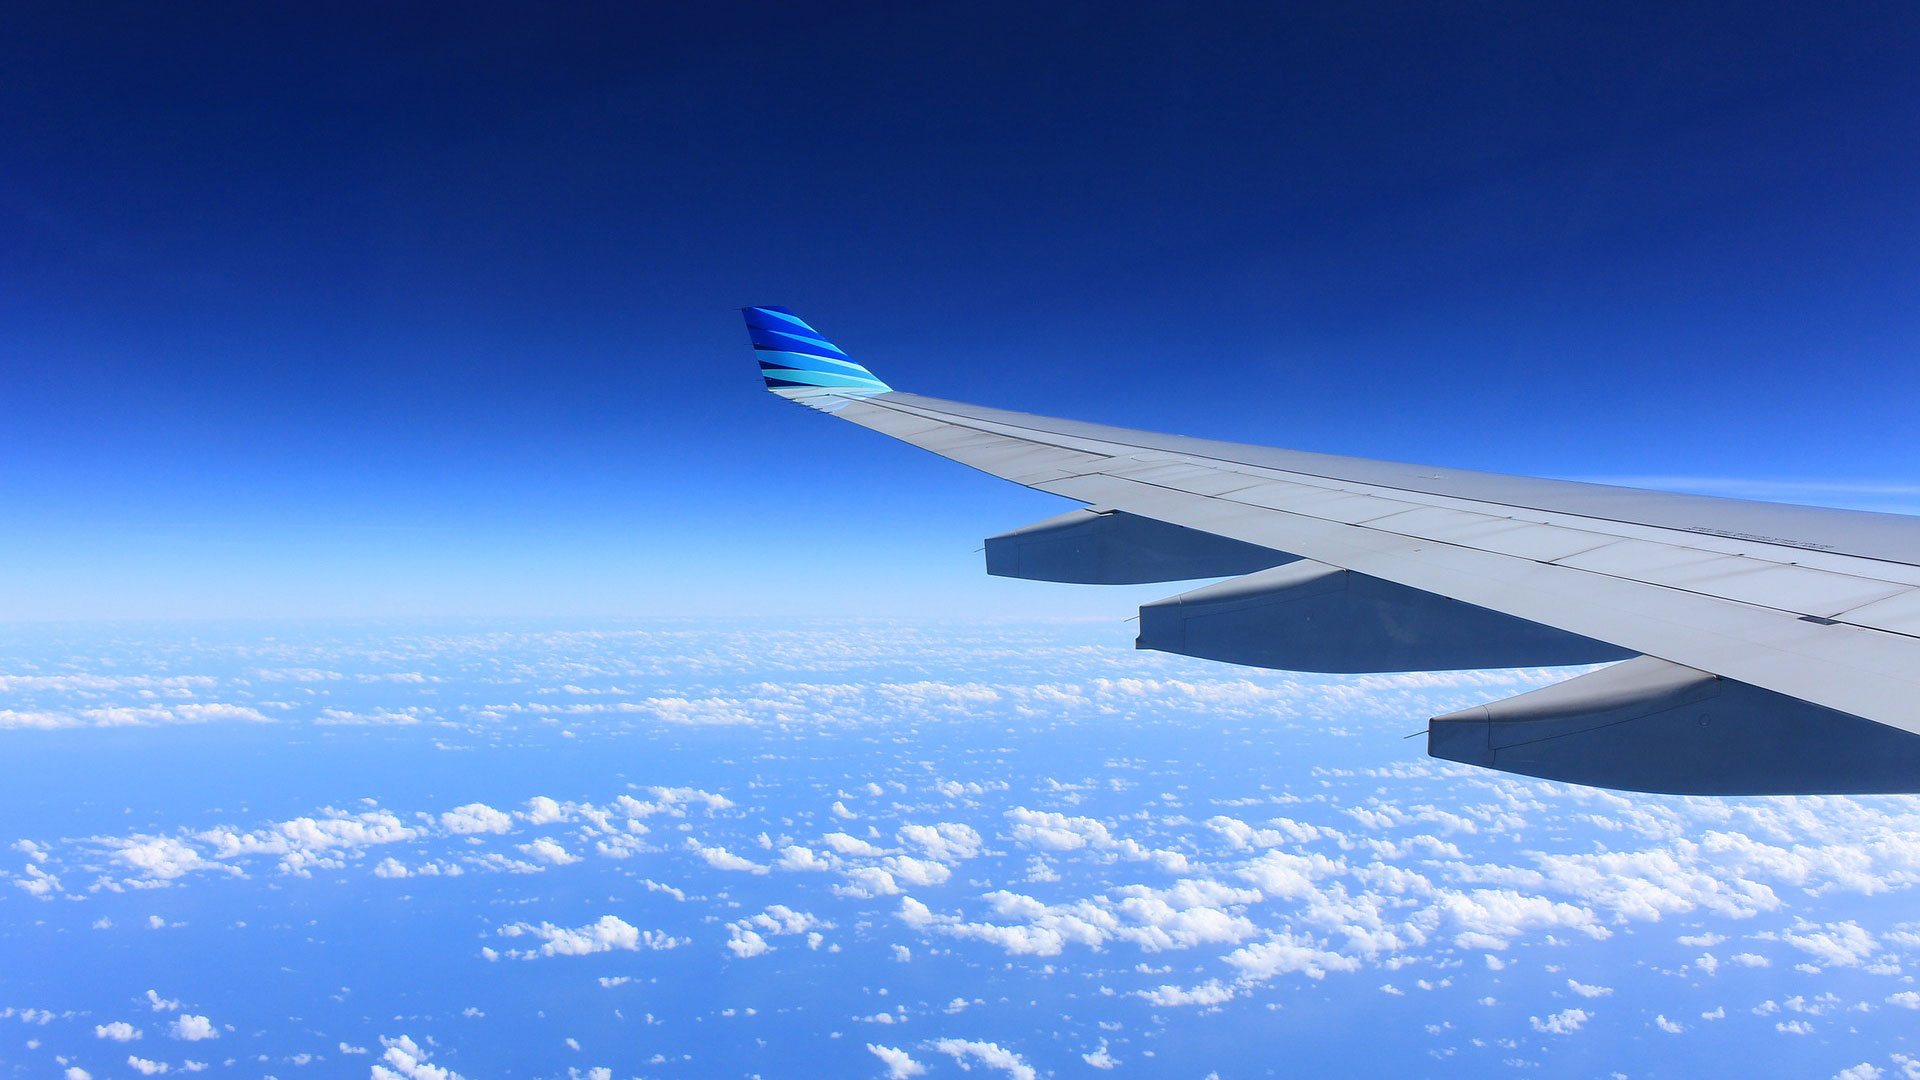 An airplane wing seen from the side